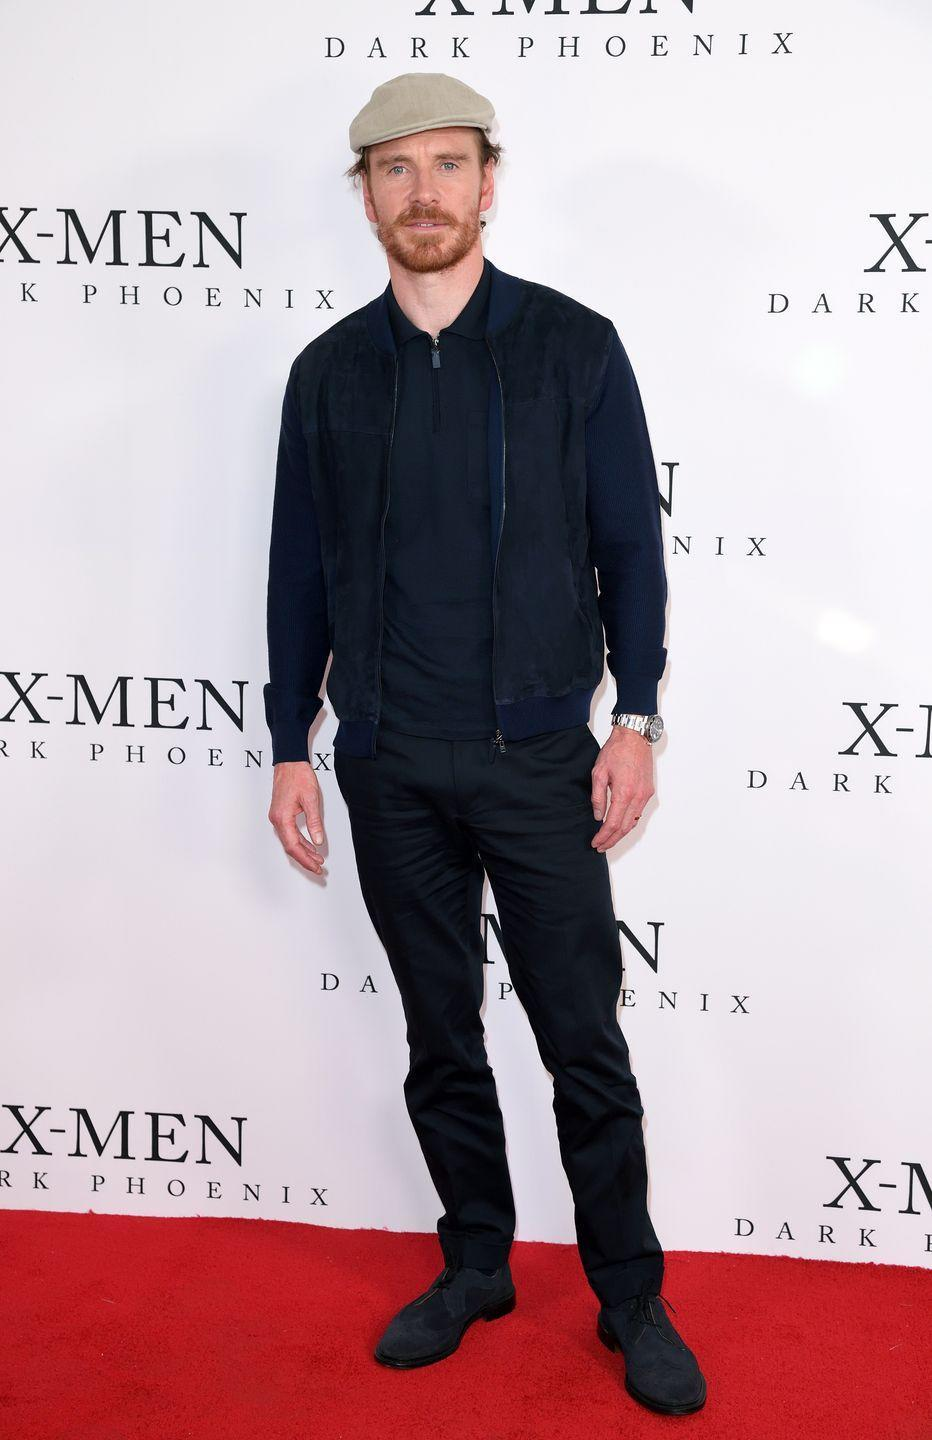 "<p>Okay—maybe Fassbender's place of birth was <em>technically</em> Germany. But with growing up in Killarney, coupled with Irish roots <a href=""http://living.scotsman.com/movies/Interview-Michael-Fassbender--Lean.5536707.jp"" rel=""nofollow noopener"" target=""_blank"" data-ylk=""slk:dating back"" class=""link rapid-noclick-resp"">dating back</a> to the country's War of Independence, the actor is certainly as Irish as they come. </p>"